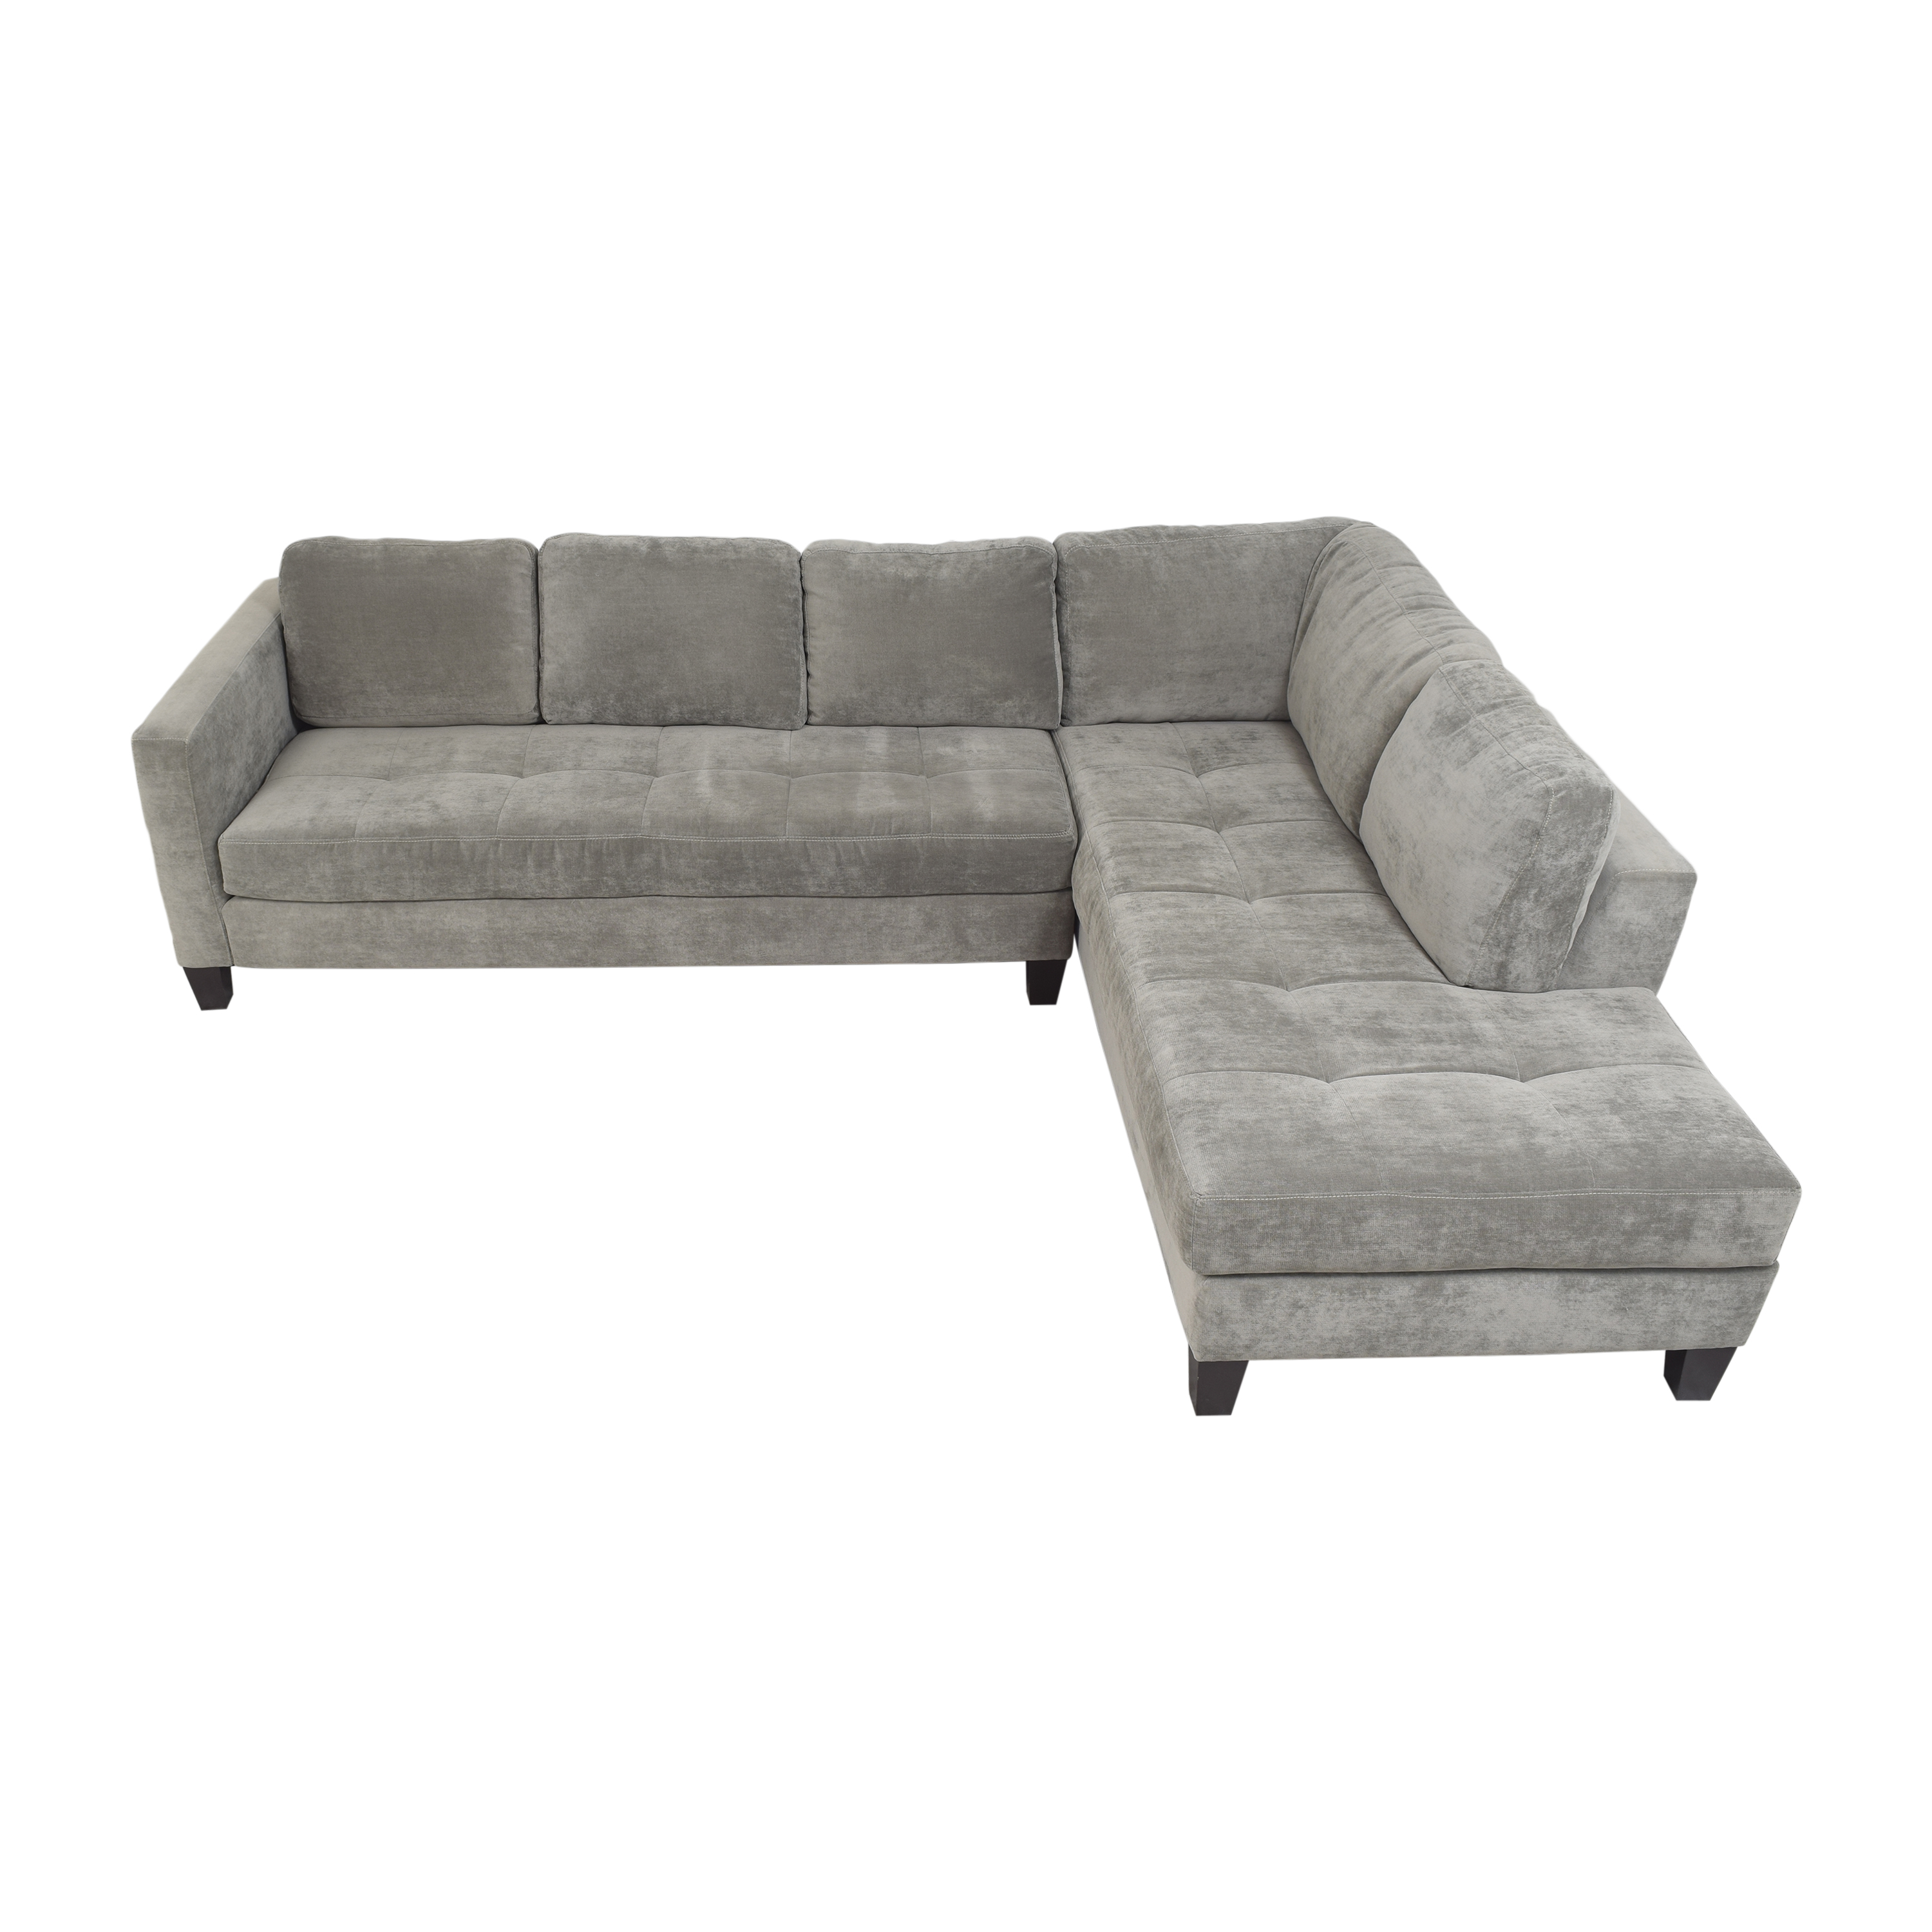 shop Macy's Tufted Chaise Sectional Sofa Macy's Sectionals